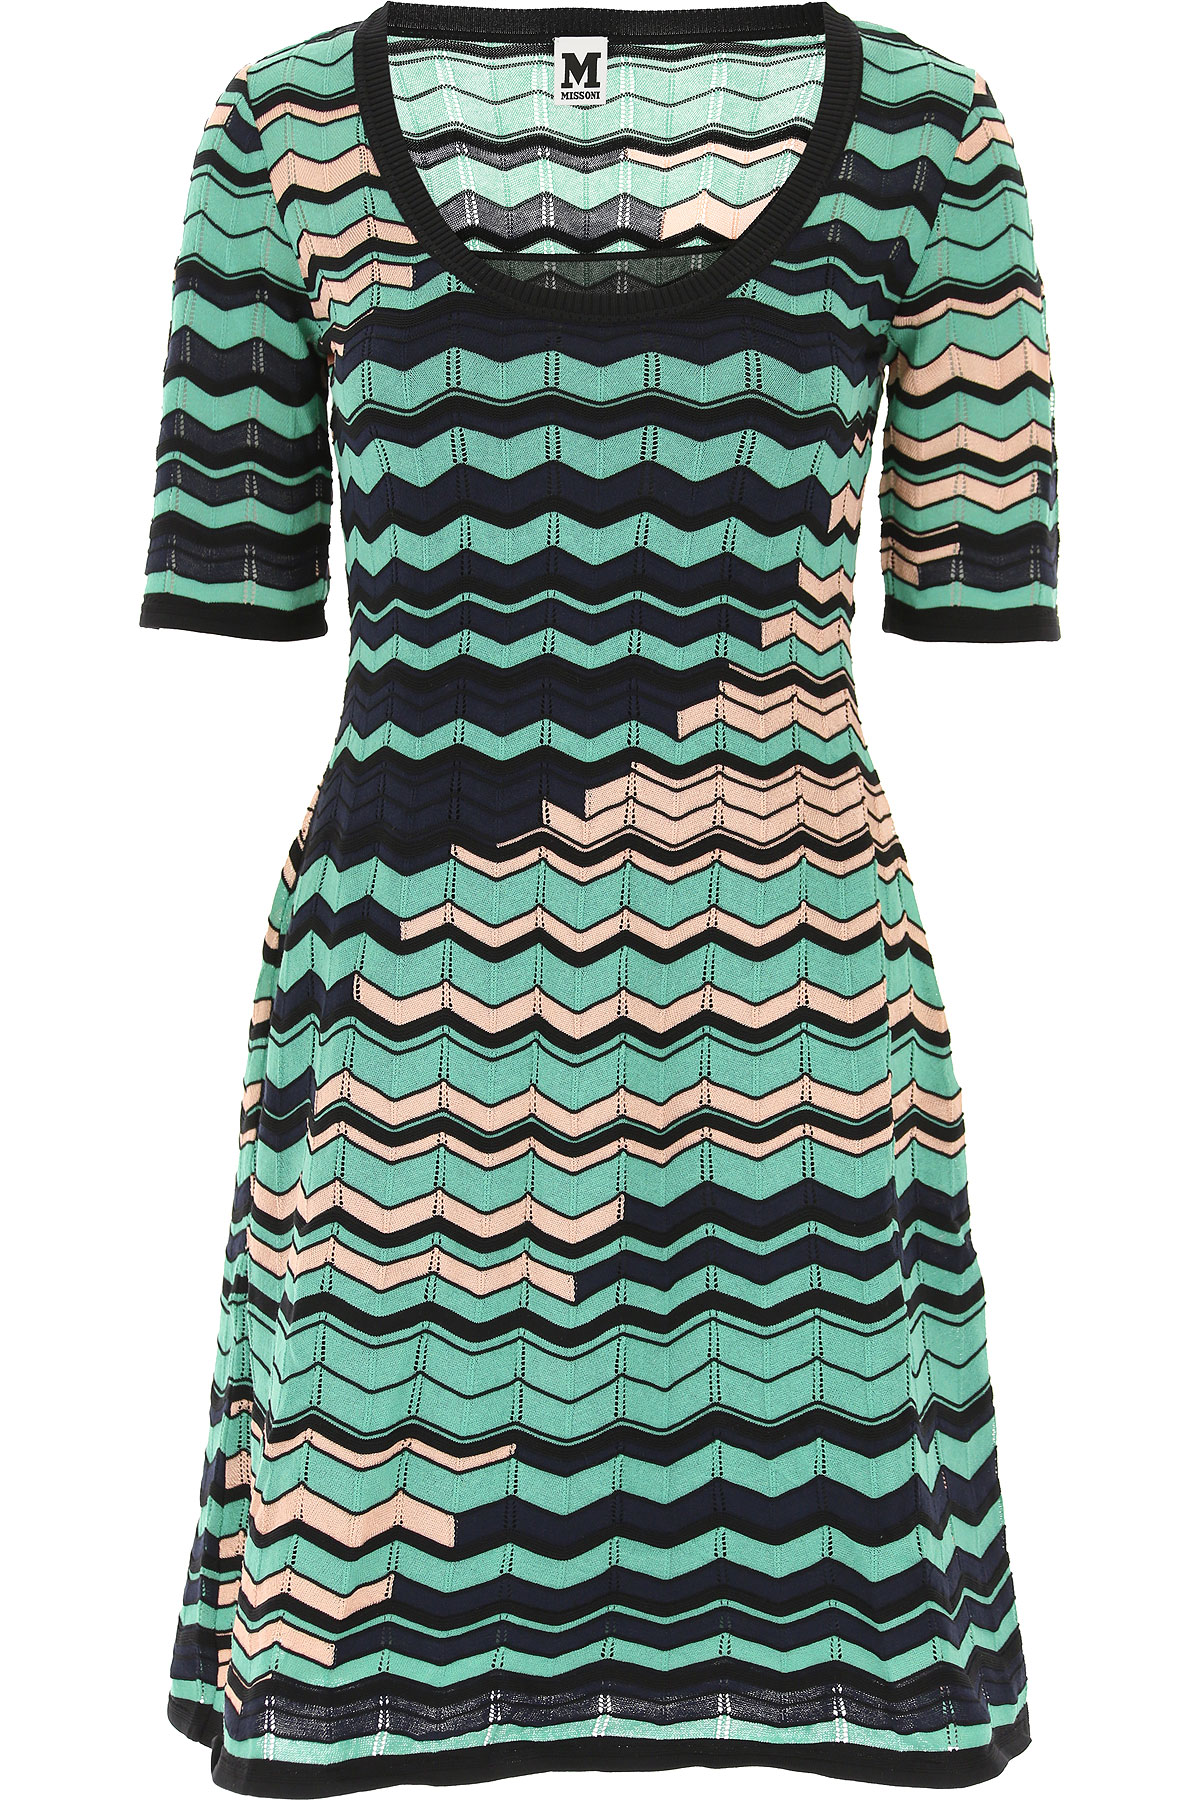 Image of Missoni Dress for Women, Evening Cocktail Party, Mint Green, Cotton, 2017, 4 6 8